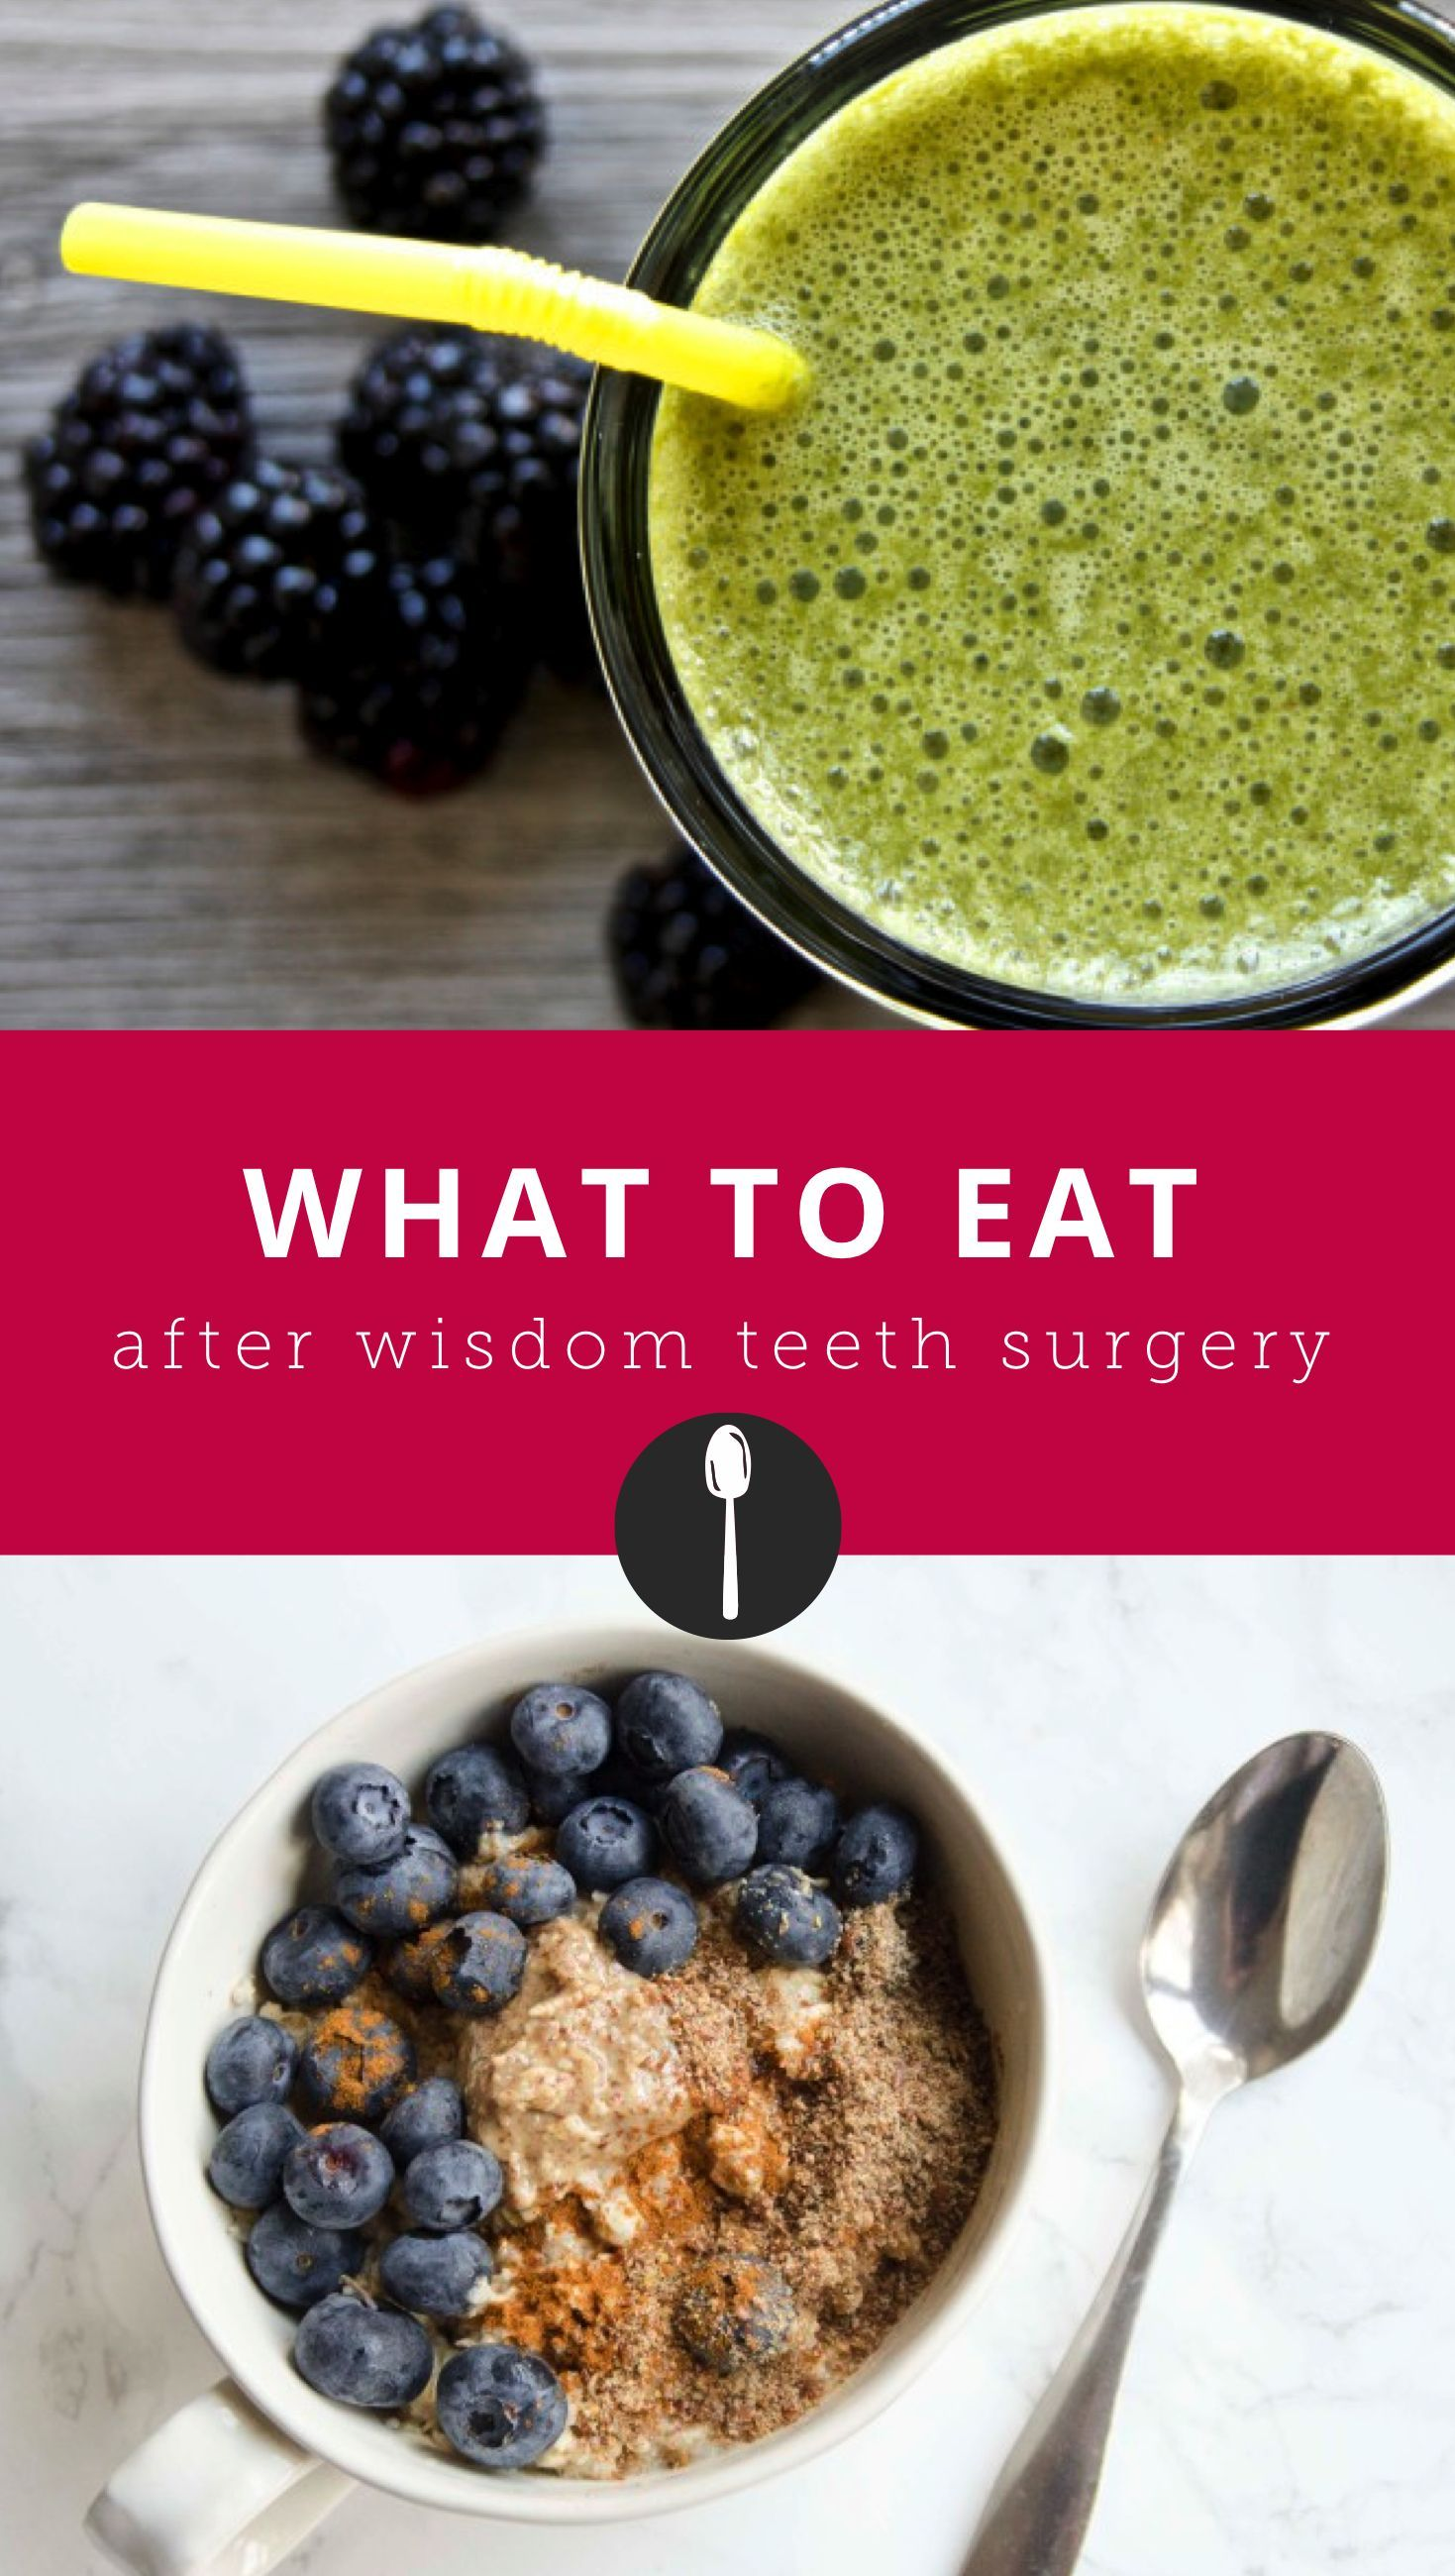 7 foods you can eat after wisdom teeth surgery that arent